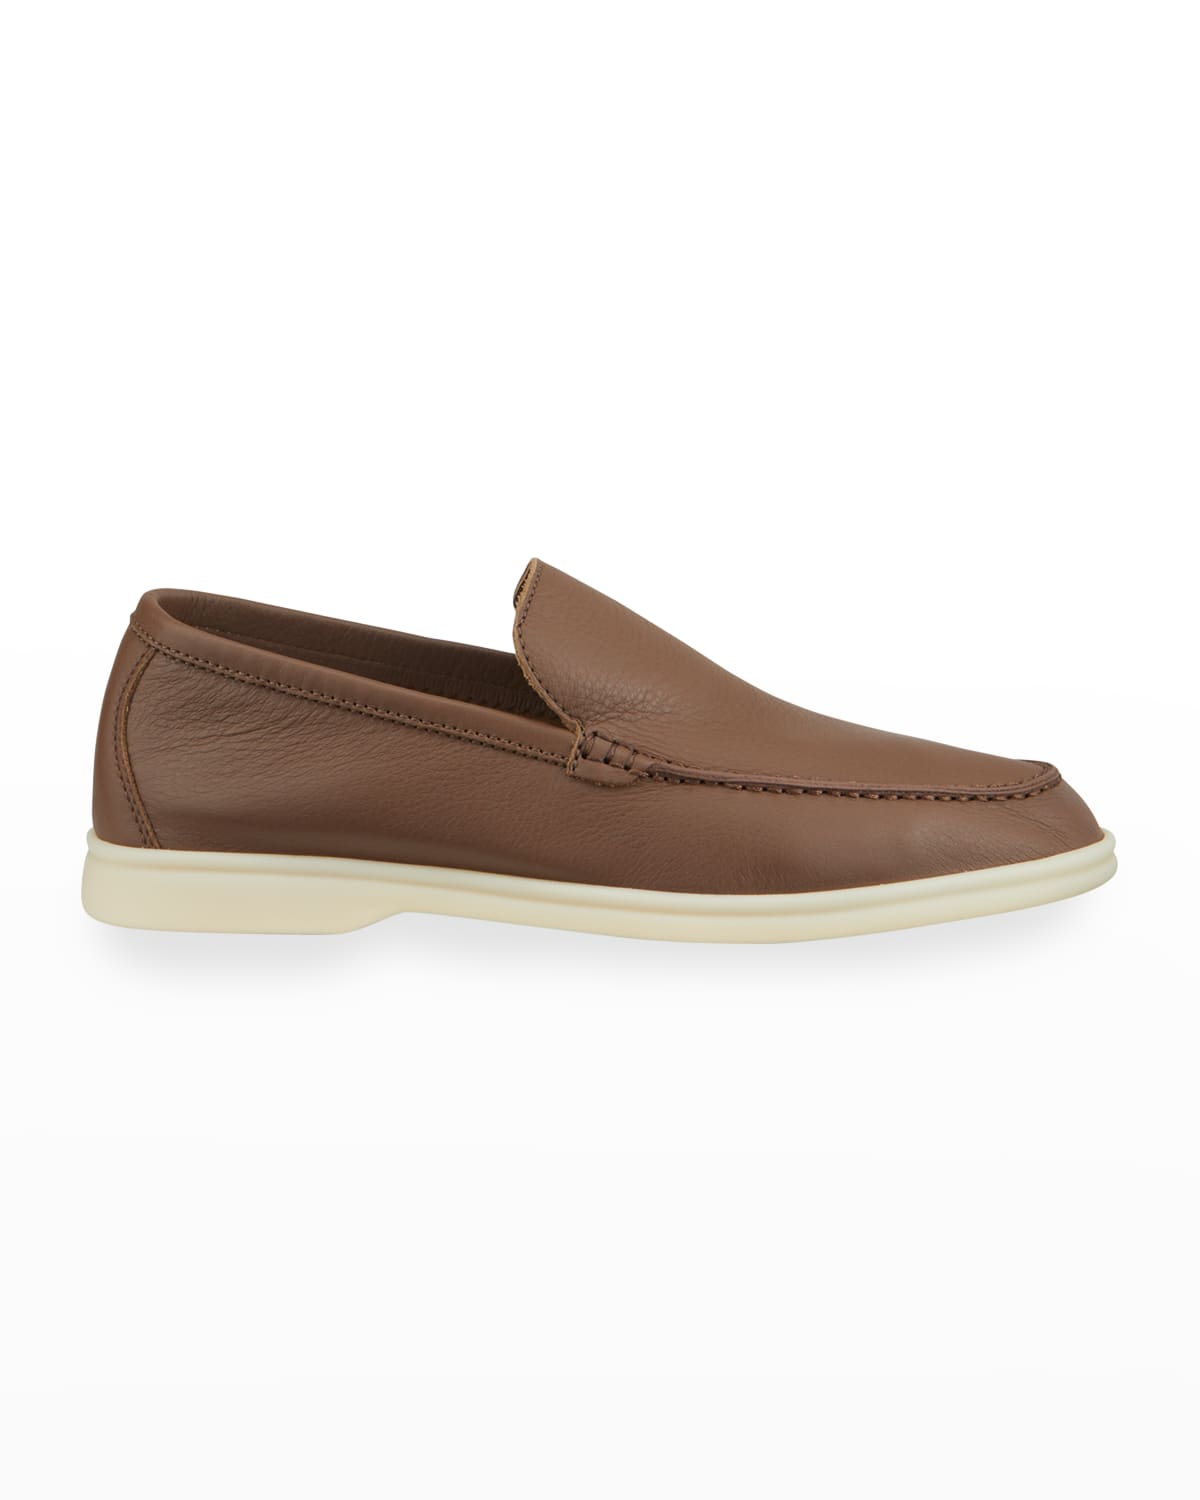 Men's Summer Walk Calf Leather Loafers